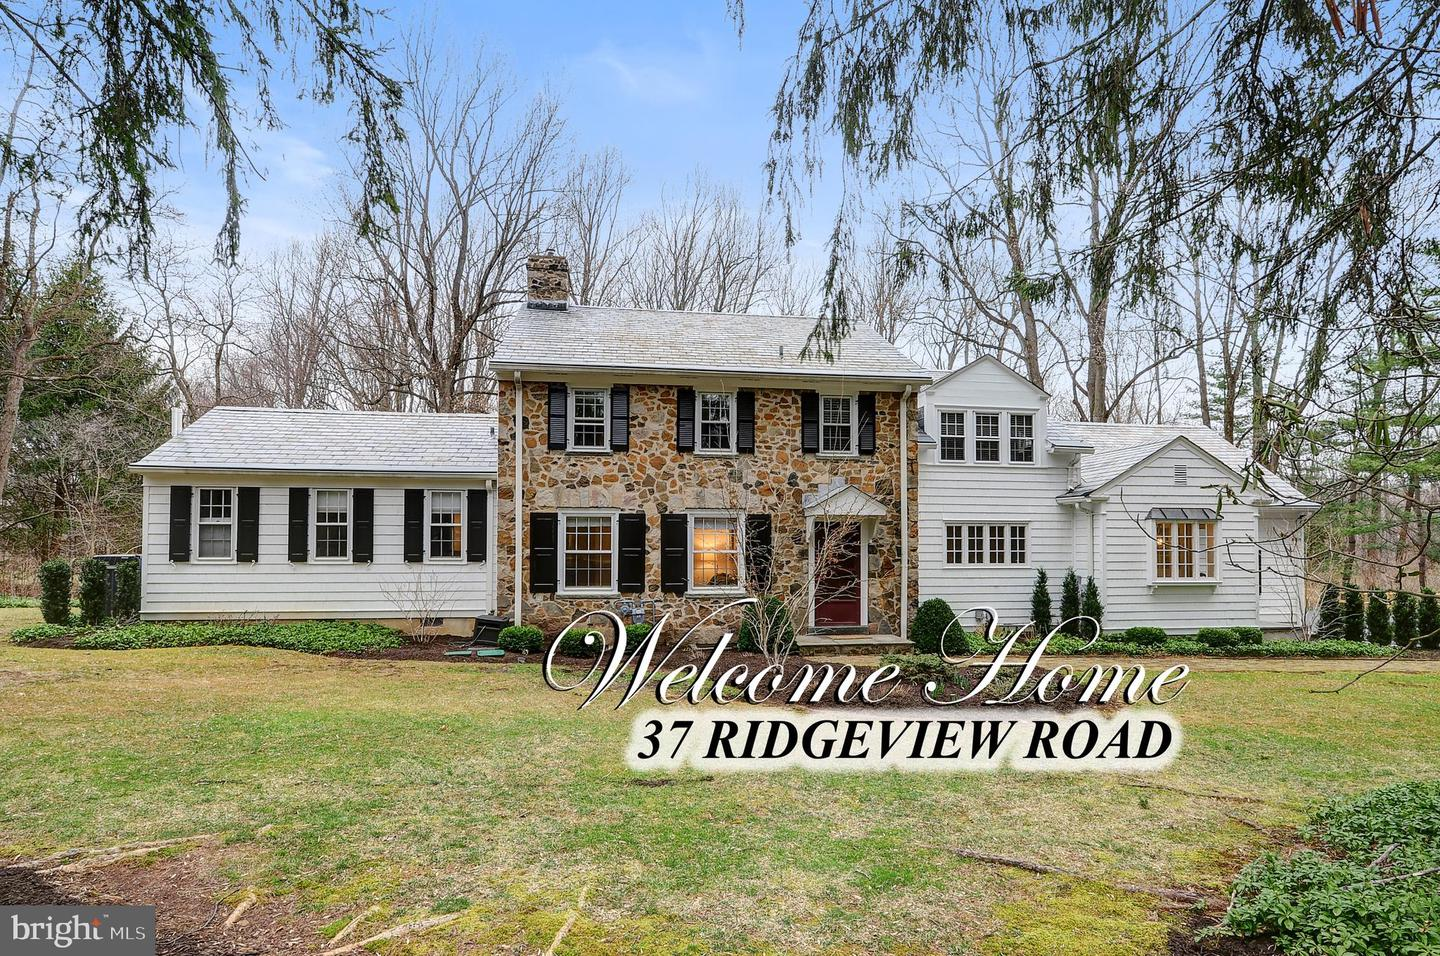 Single Family Home for Sale at 37 RIDGEVIEW ROAD Princeton, New Jersey 08540 United StatesMunicipality: Princeton